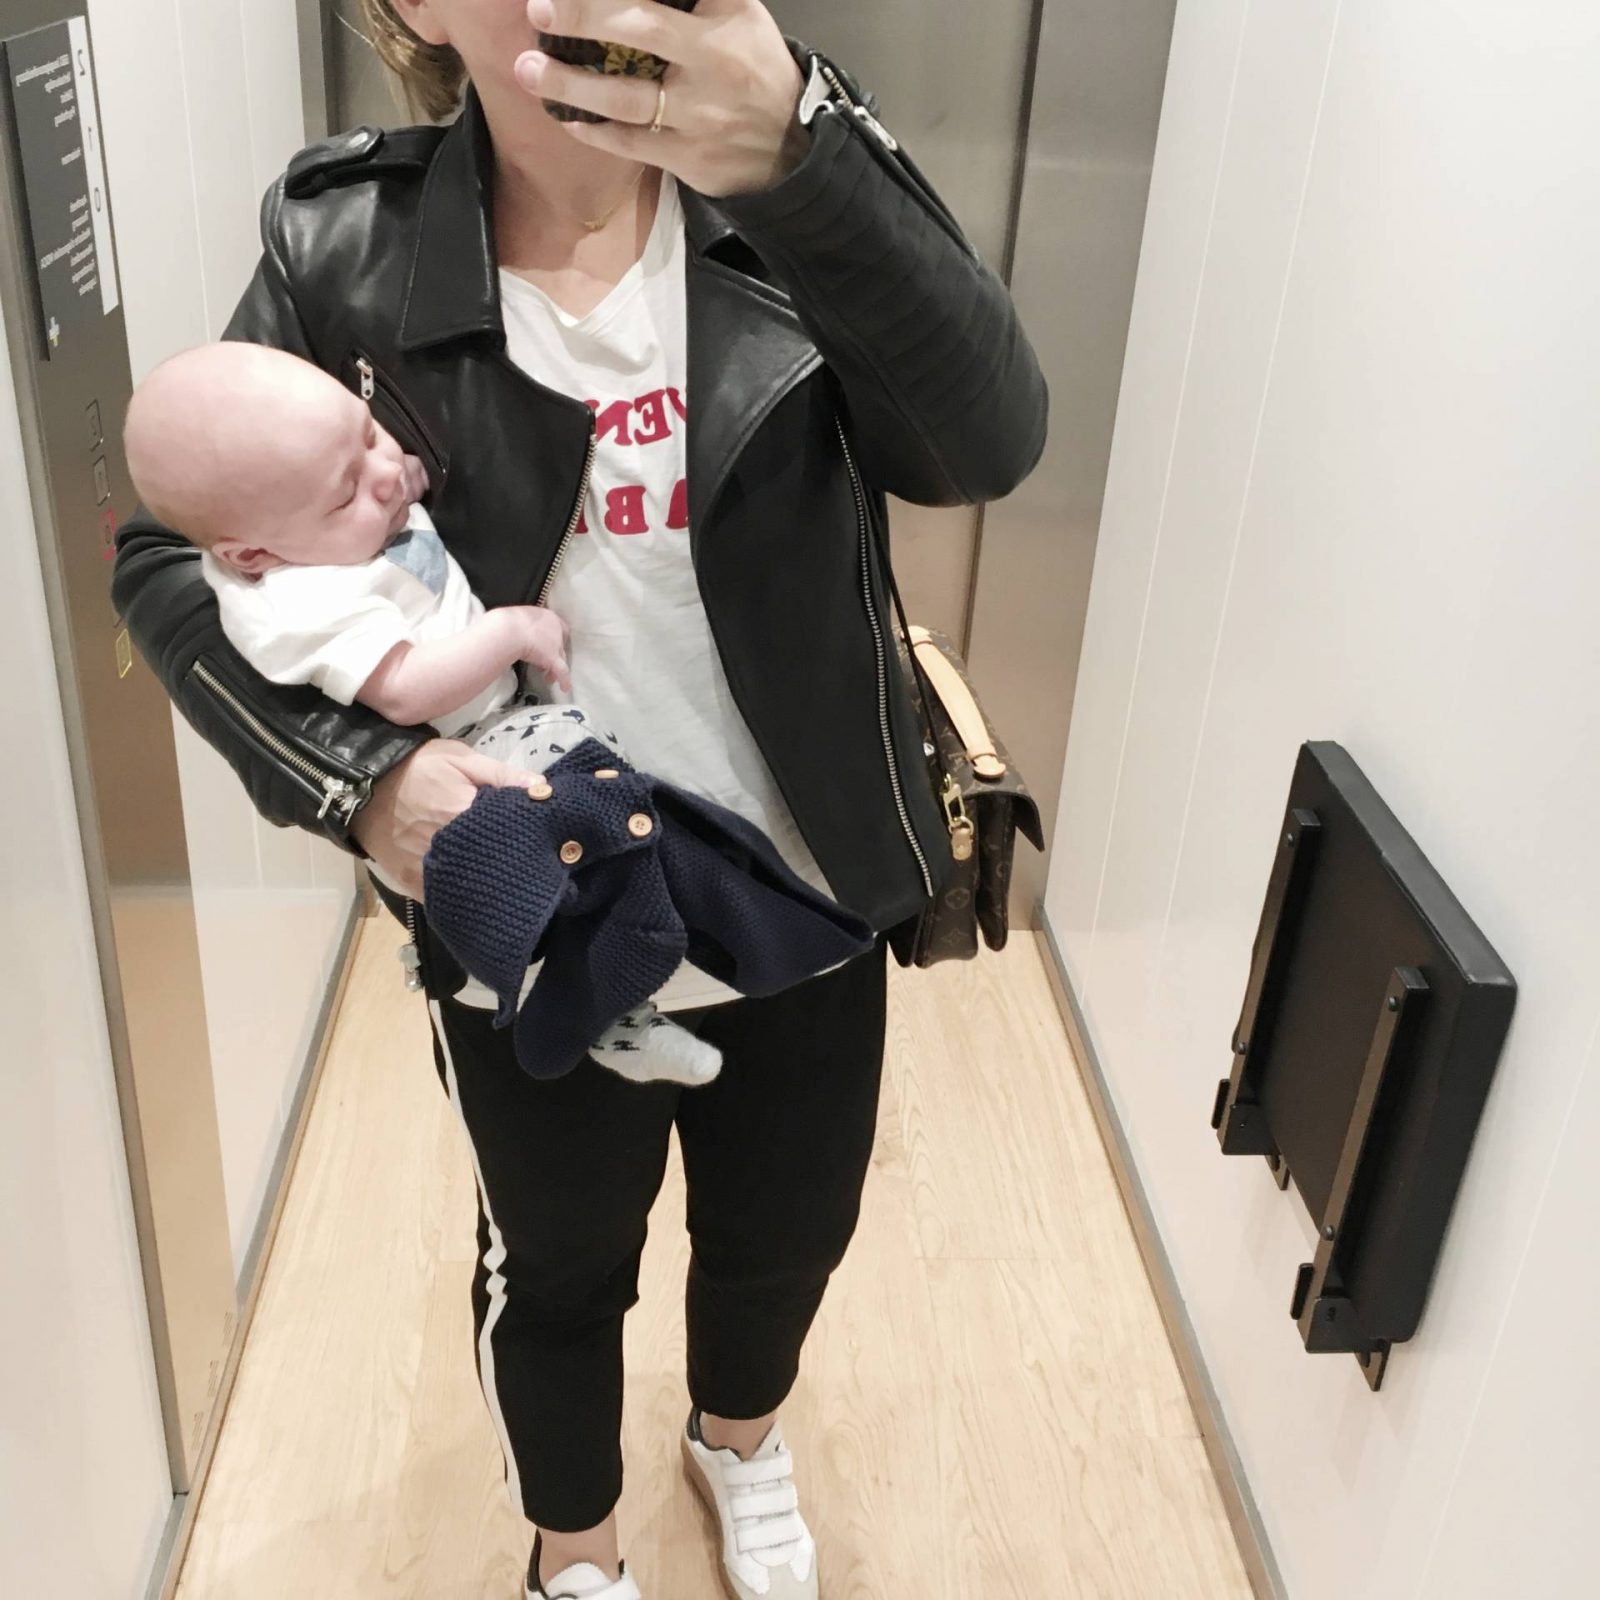 Mom's week in outfits #1